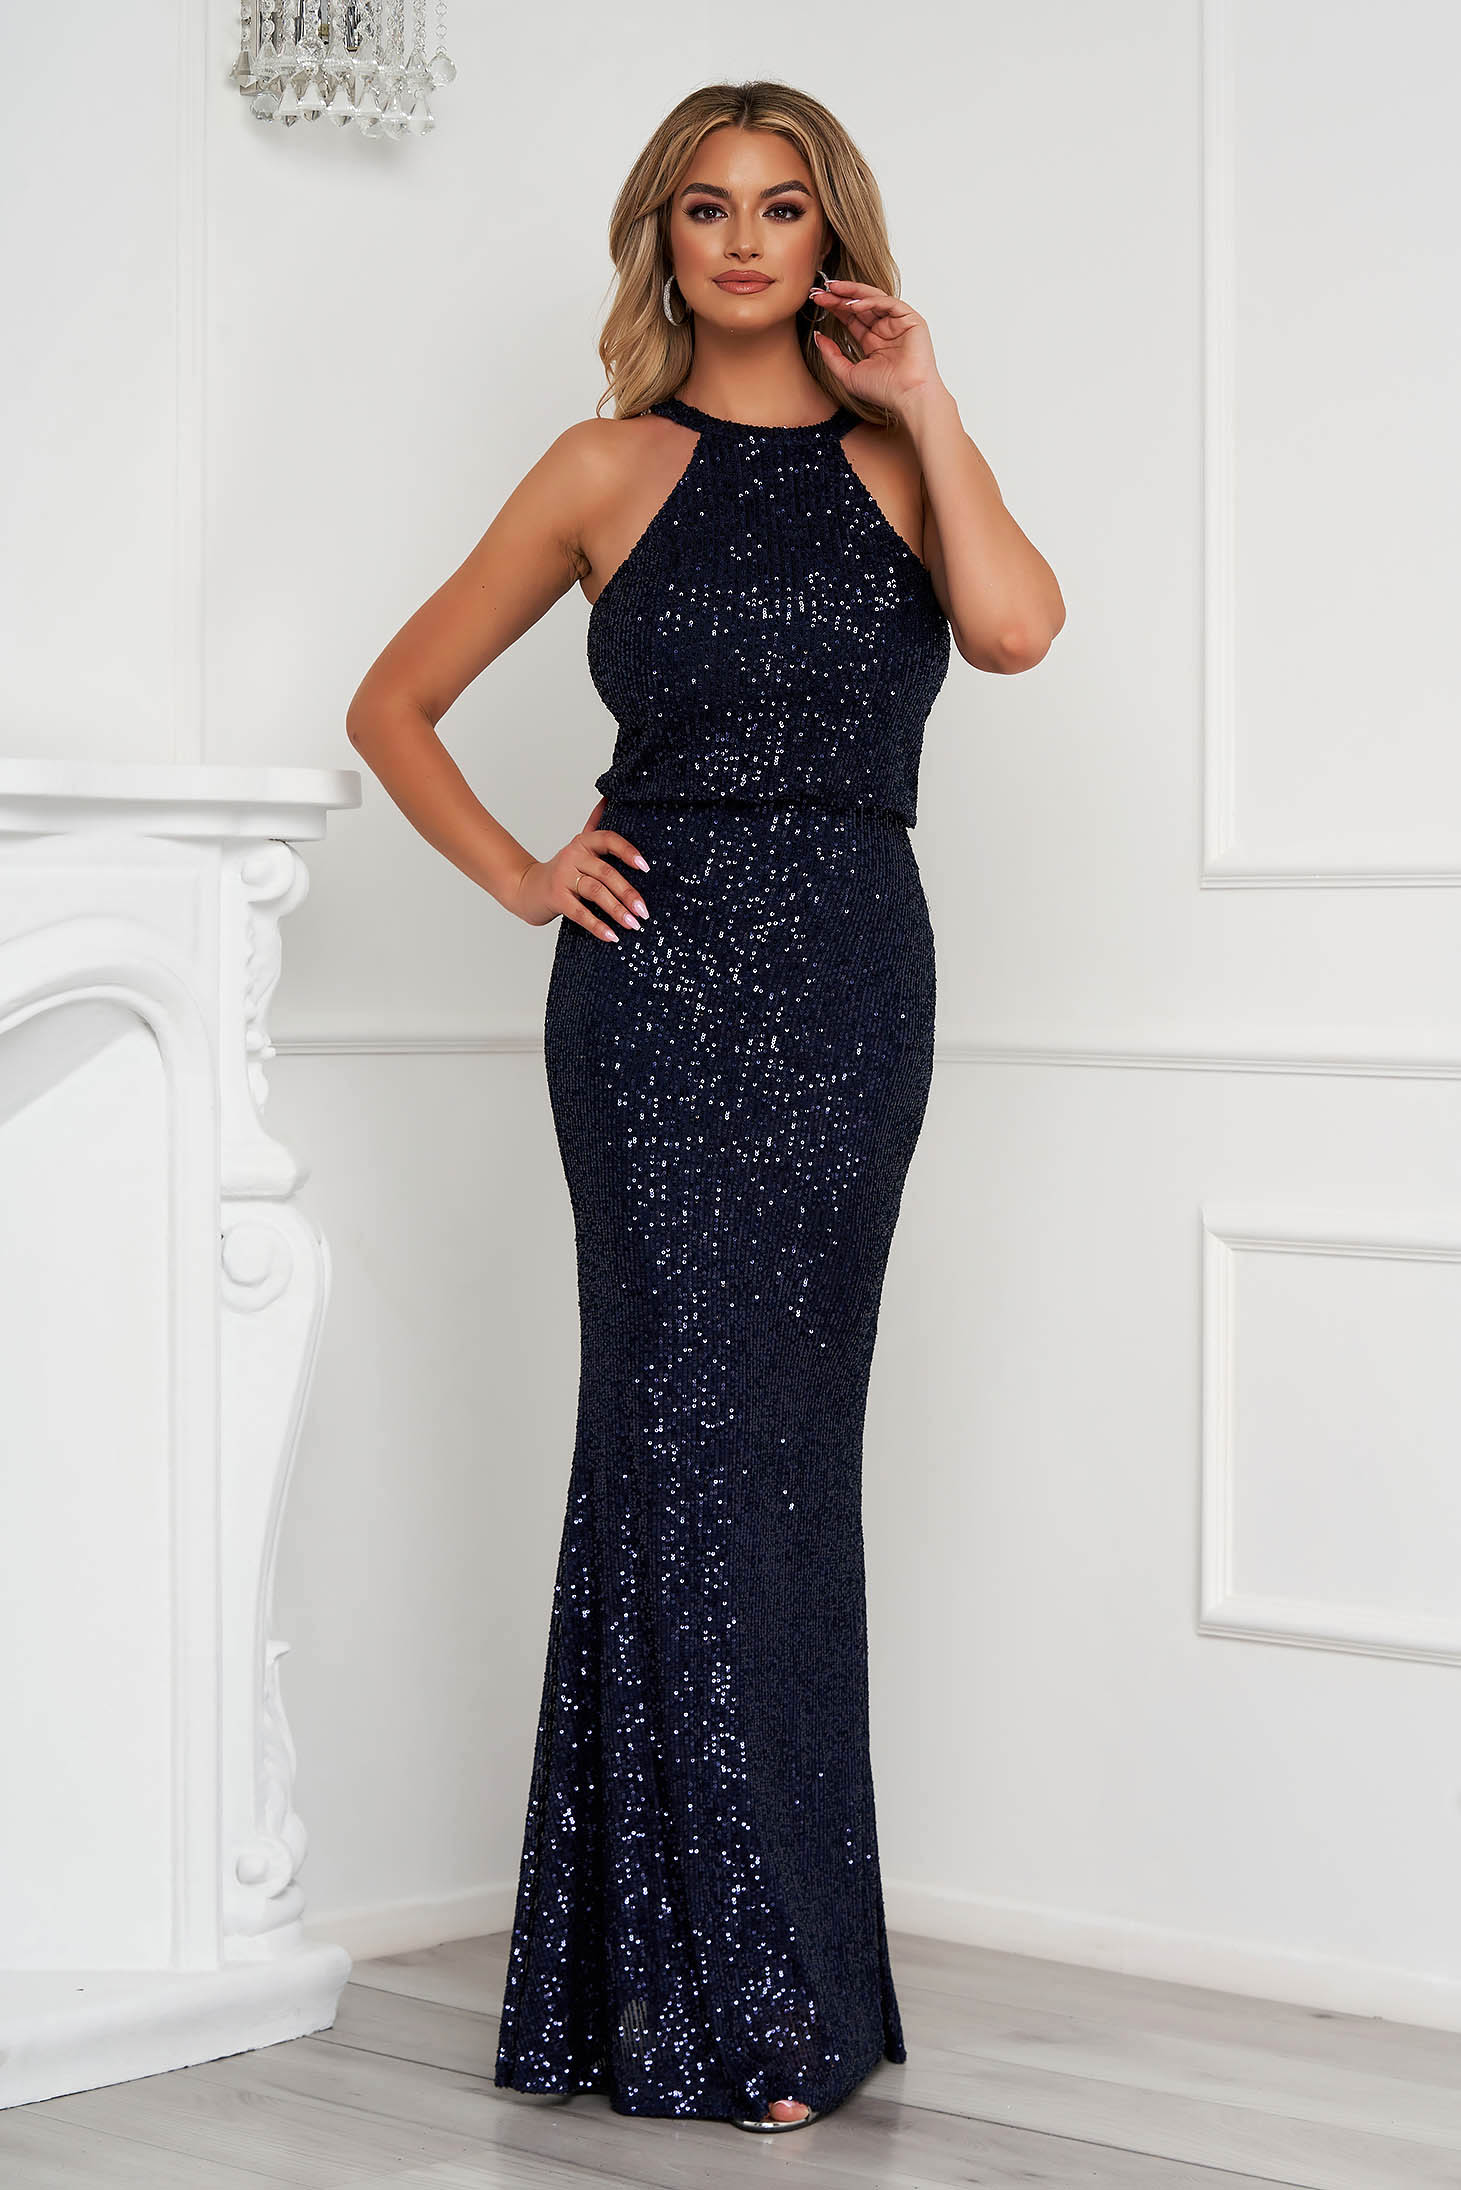 Darkblue dress long occasional pencil with sequins halter neck